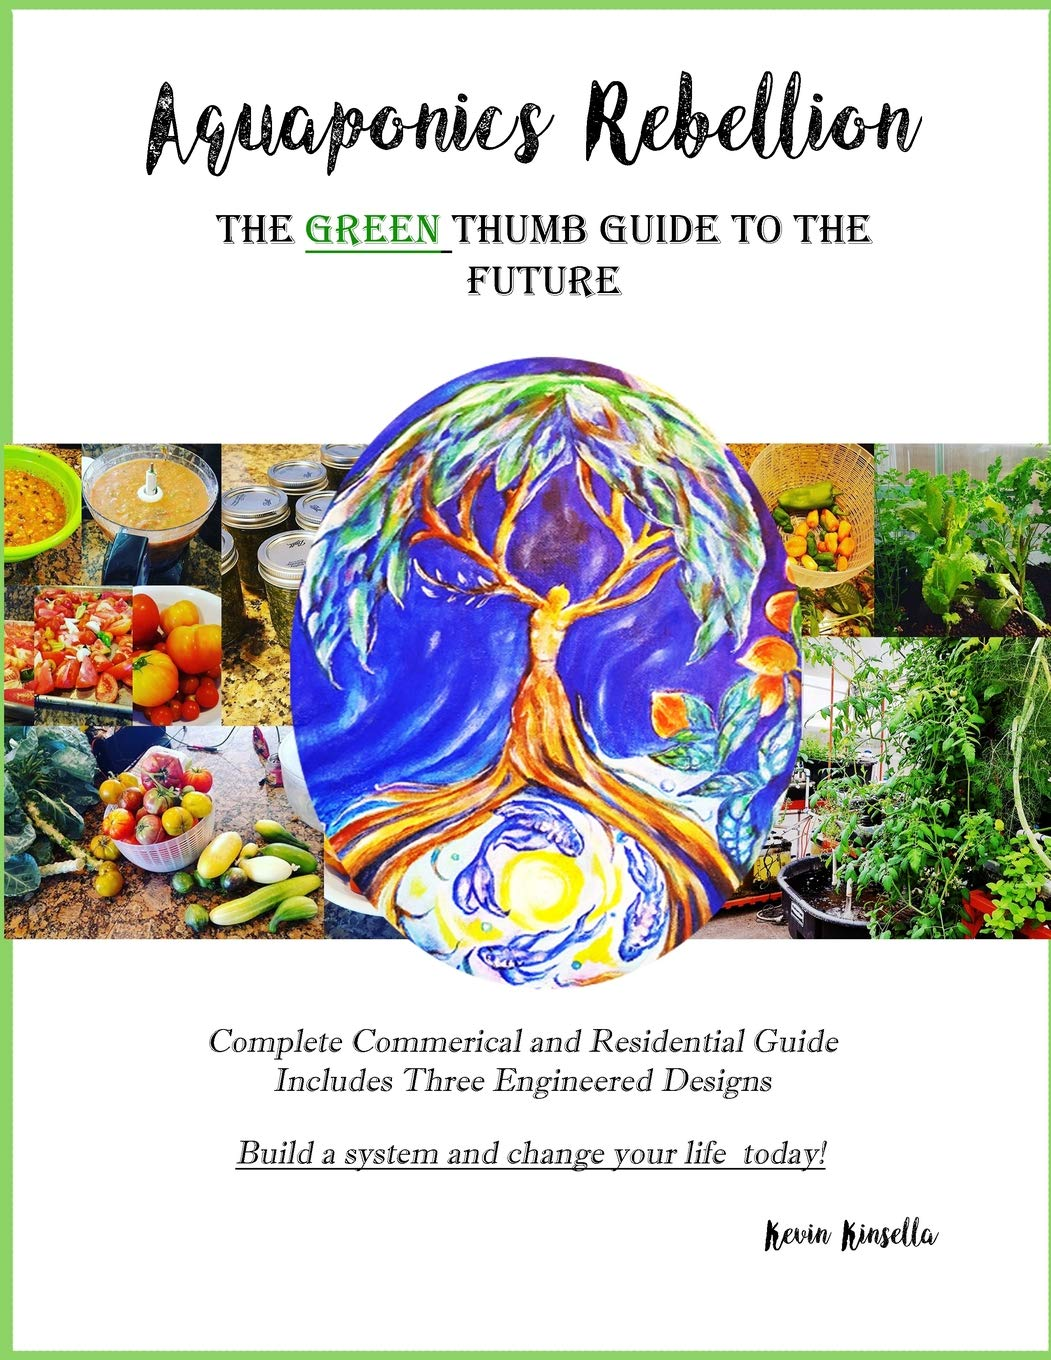 Aquaponics Rebellion: The Green Thumb Guide to the Future